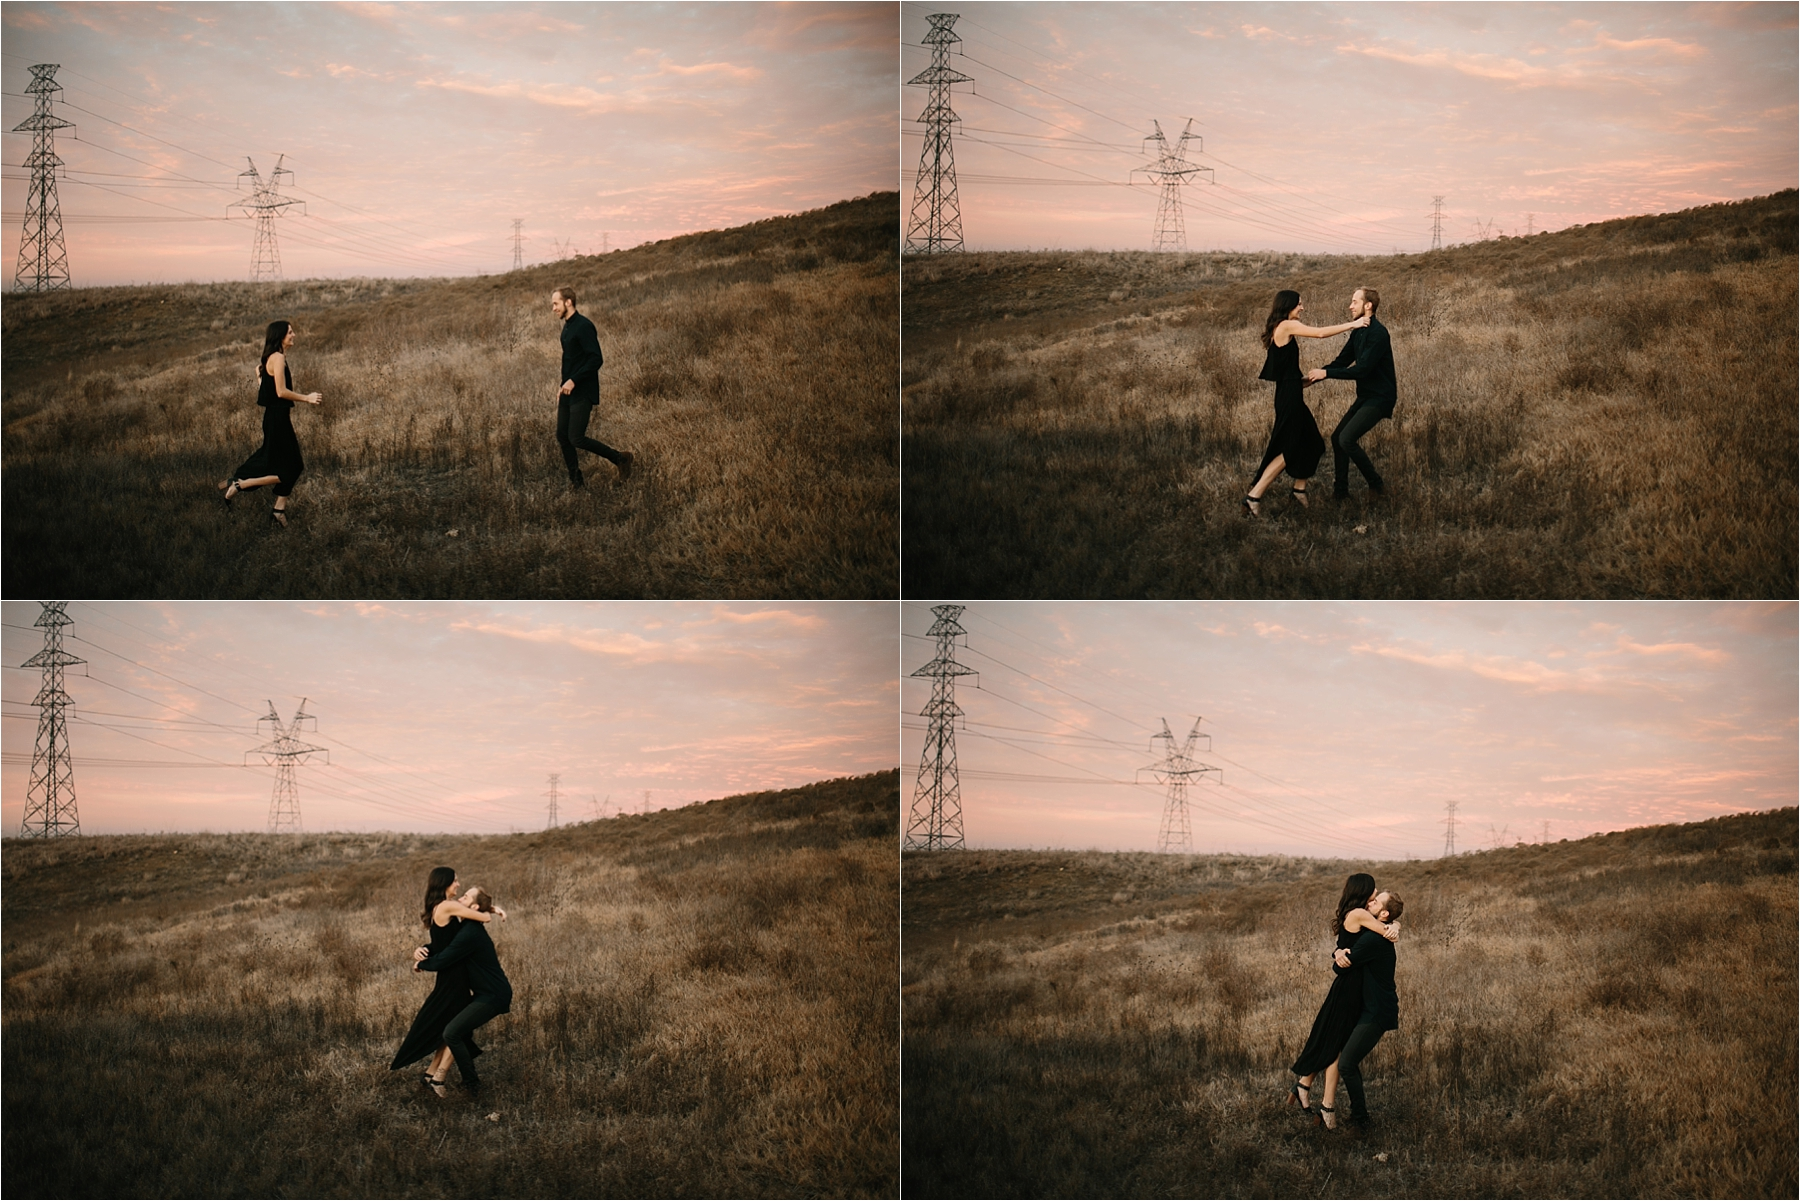 Trey + Phoebe __ a playful, intimate engagement session with dark_neutral outfit inspiration by North Texas Wedding Photographer Rachel Meagan Photography __ 61